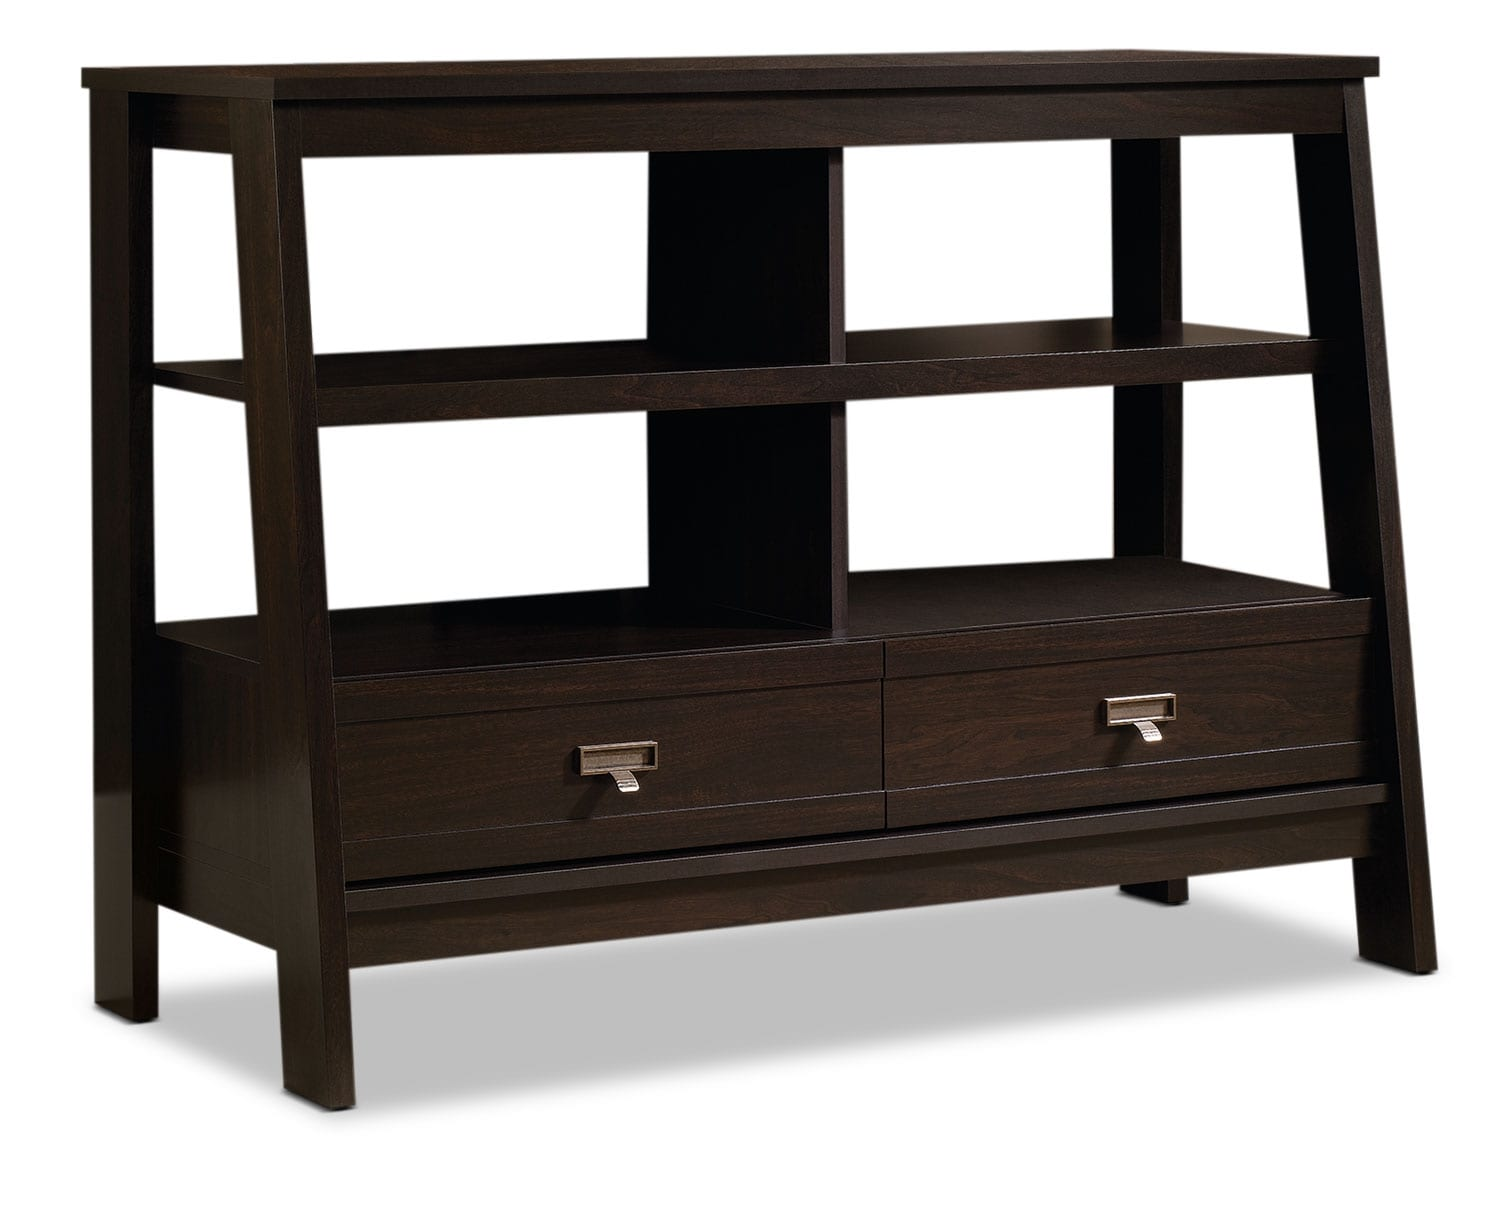 "Stockbridge 45"" TV Stand - Jamocha Wood"